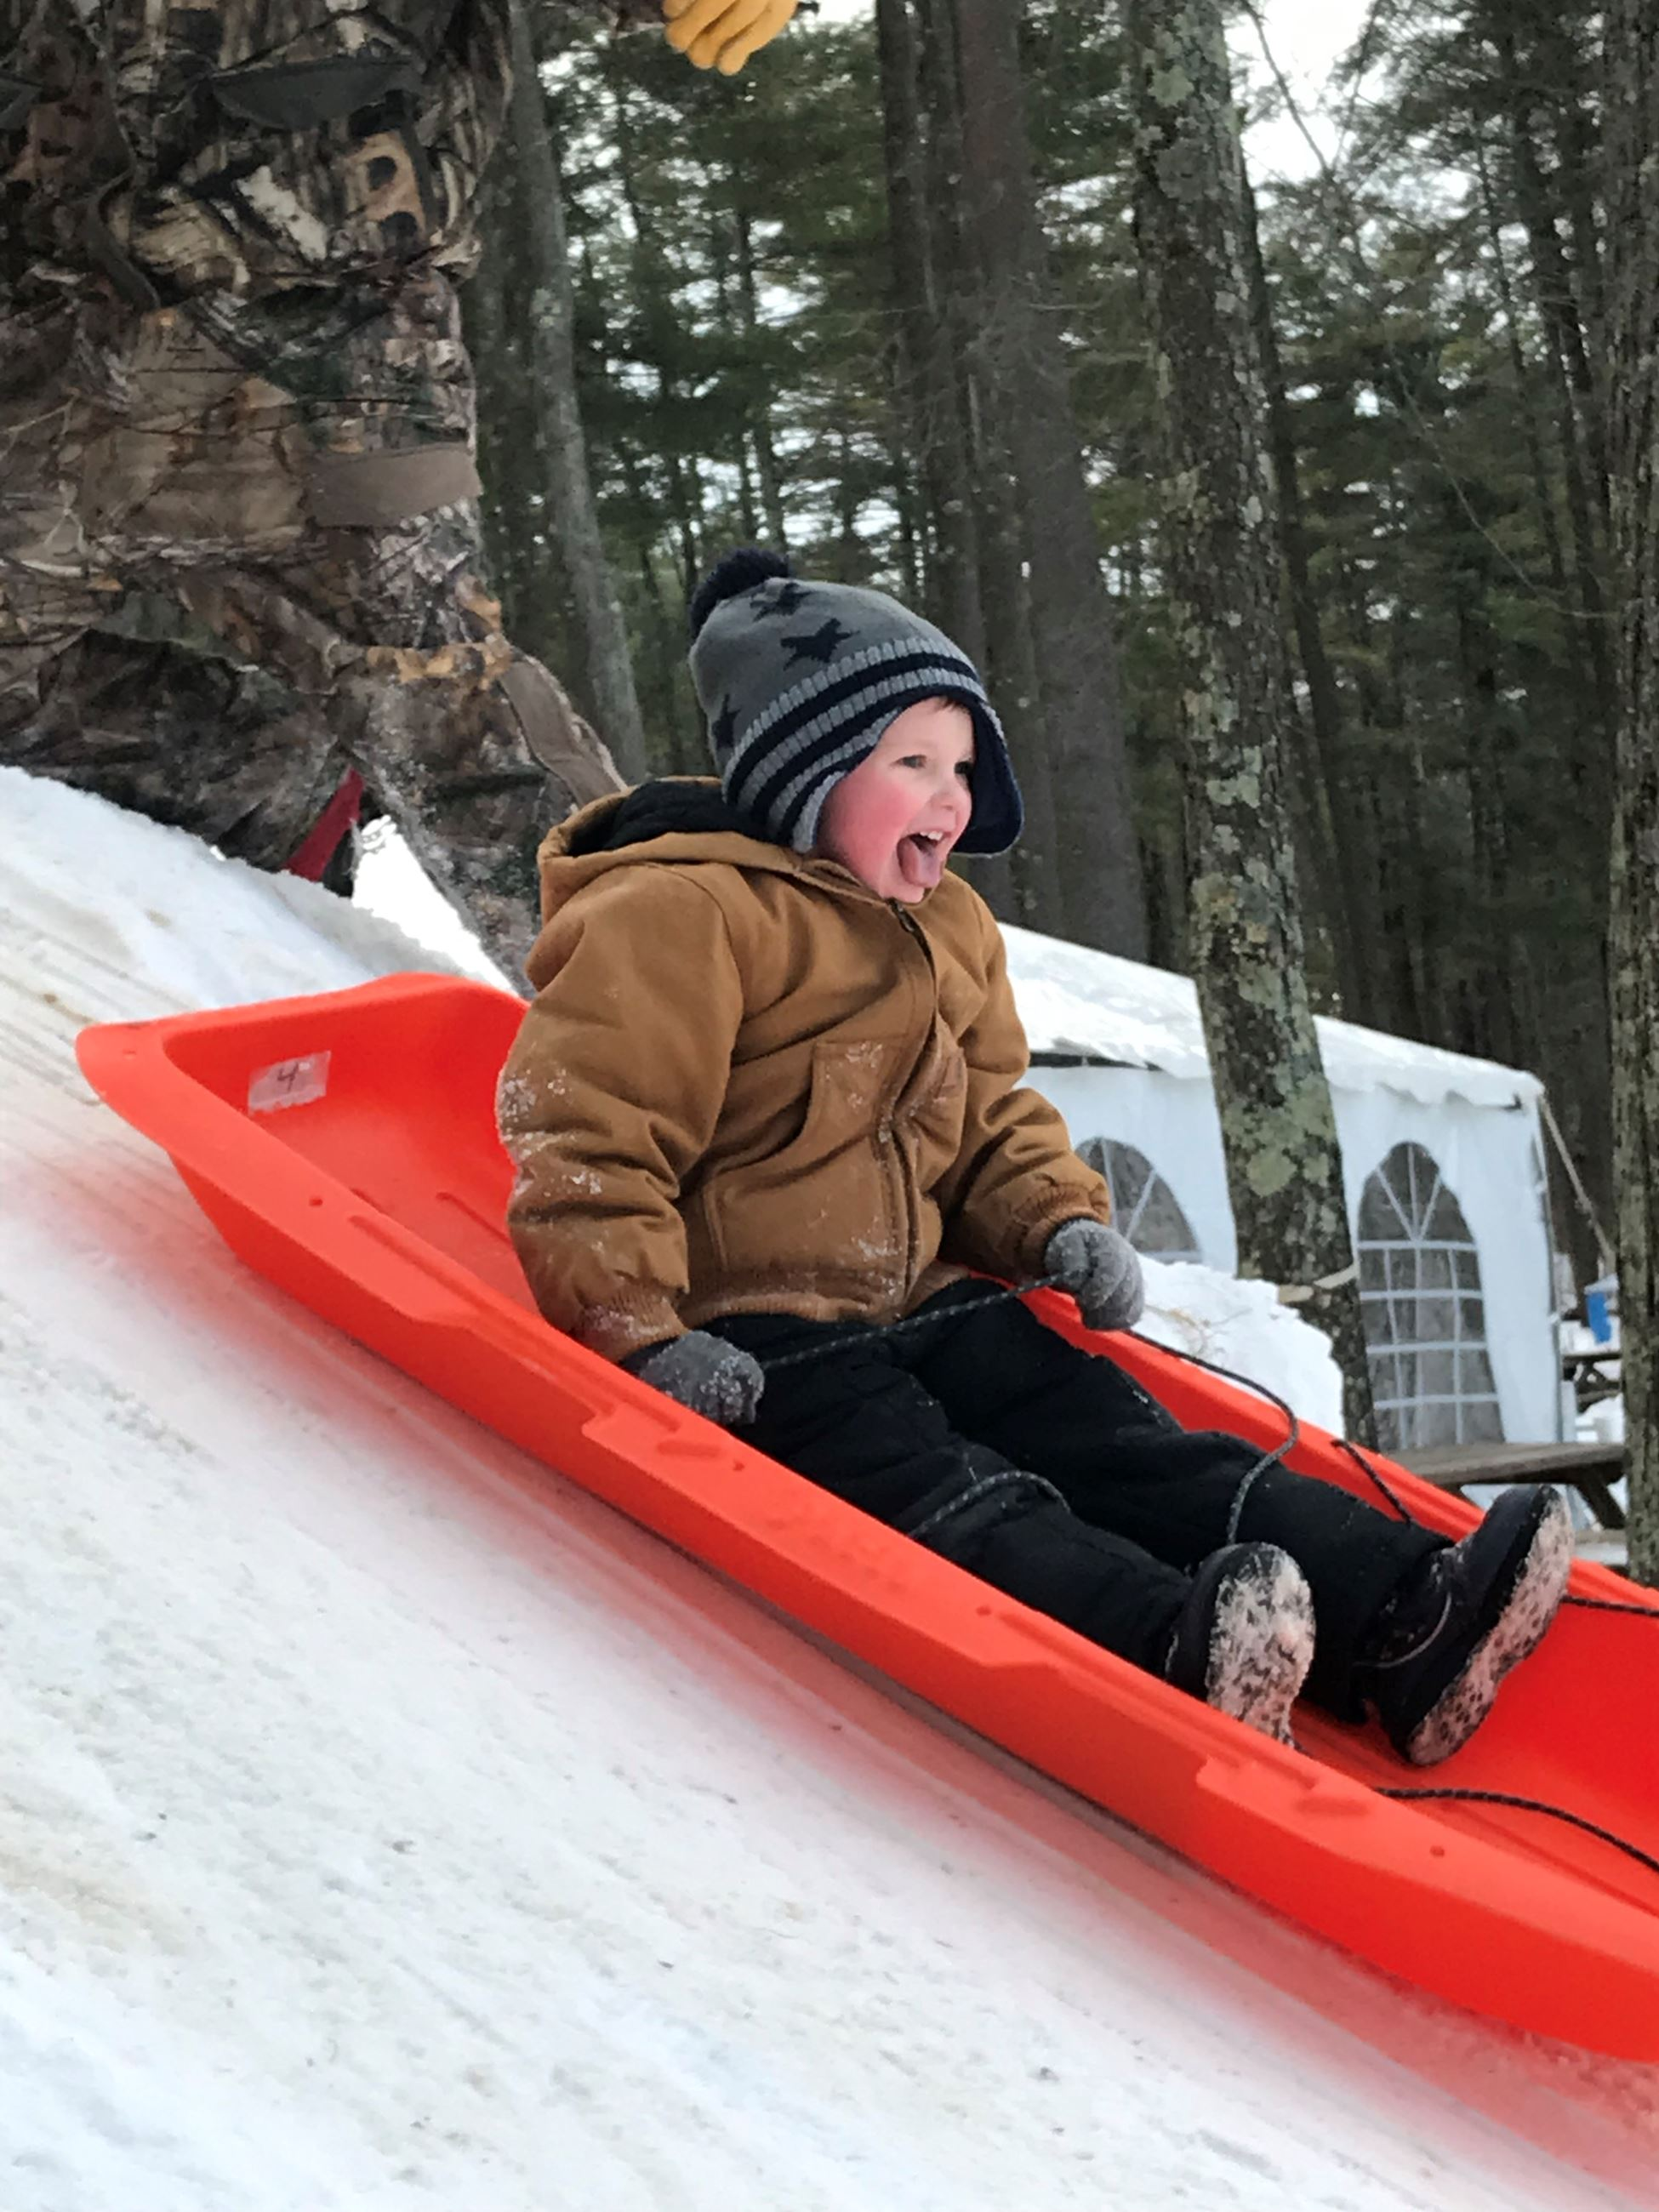 Winterfest 2019 Sledding Joy